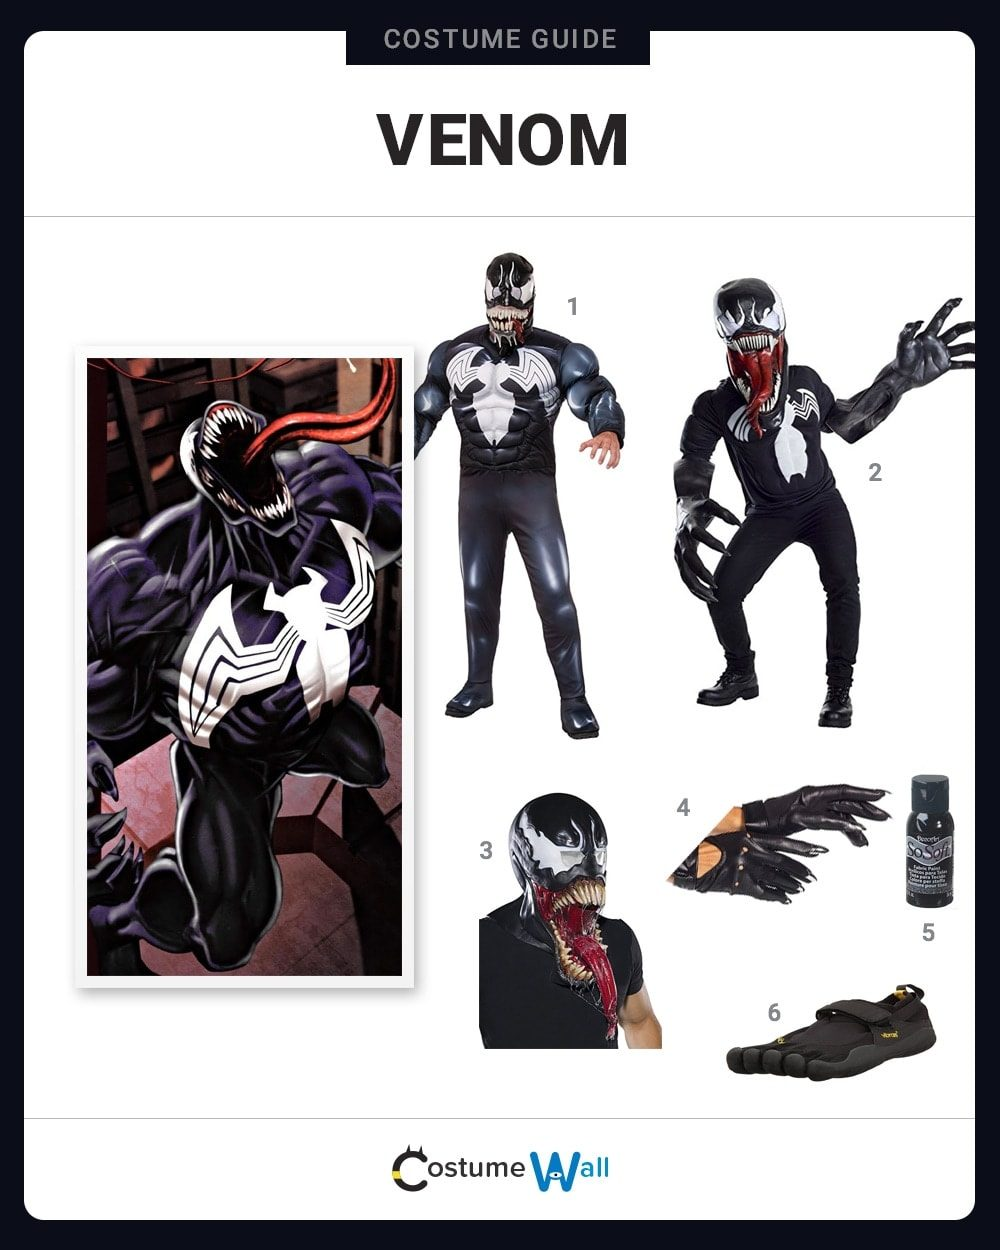 Venom Costume Guide